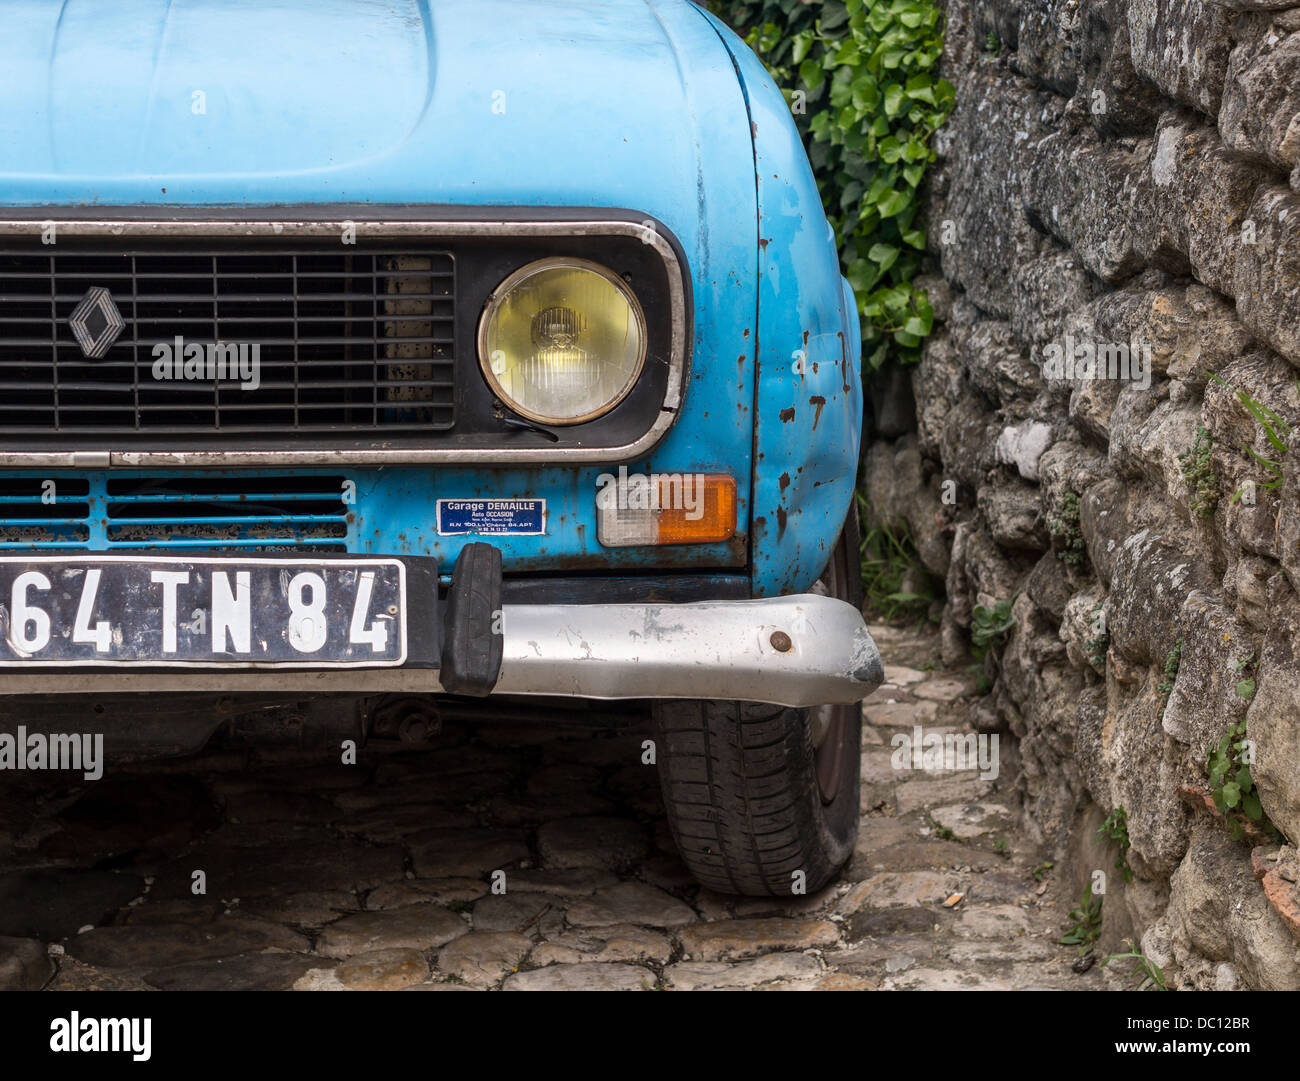 Bright blue old Citron car. Detail of the corner a rather battered old automobile parked beside a stone wall. - Stock Image